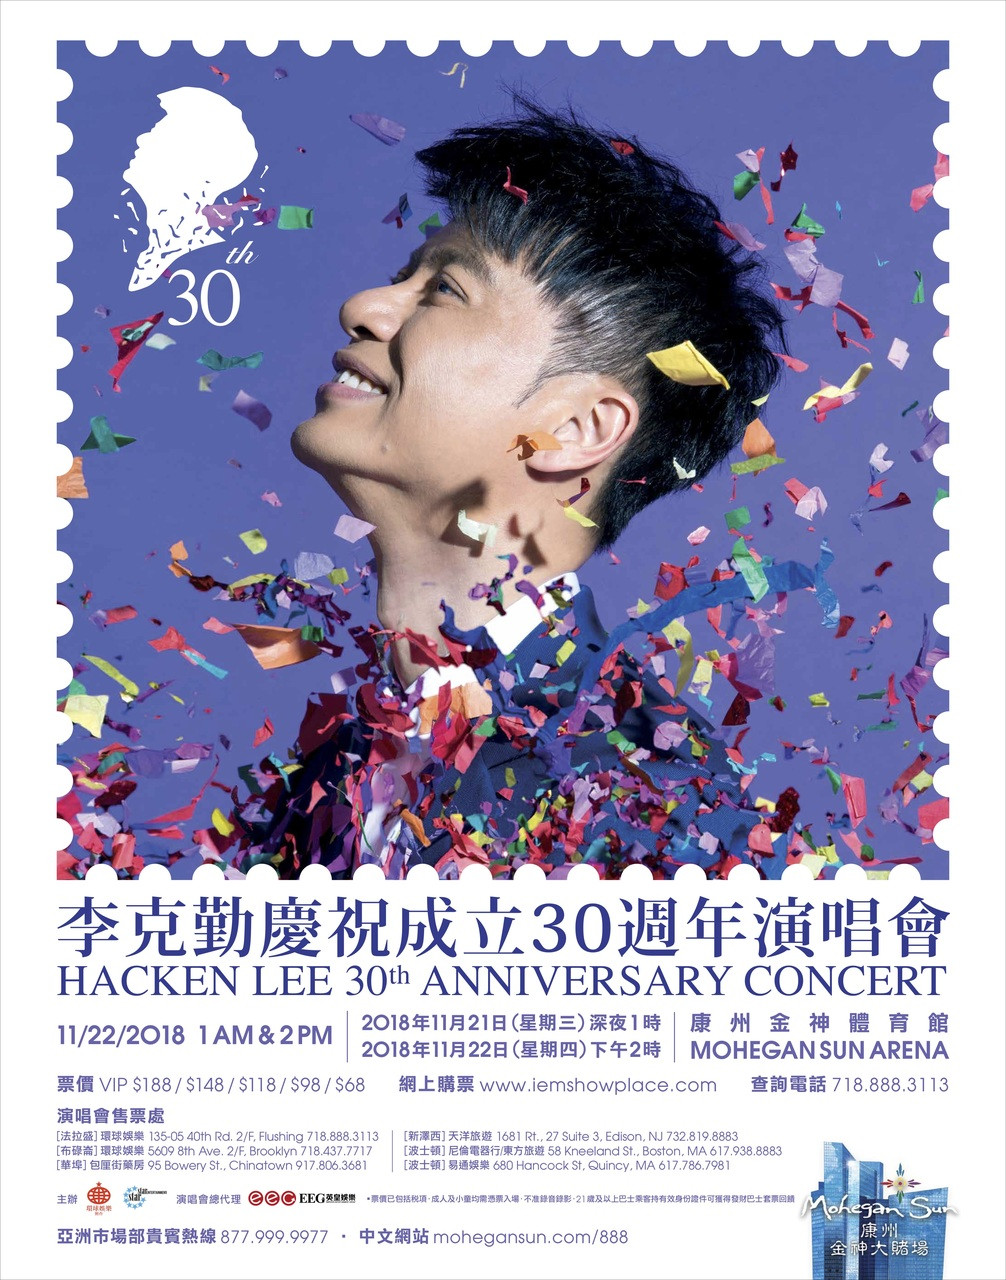 Poster 李克勤慶祝成立30週年演唱會 HACKEN LEE 30th ANNIVERSARY CONCERT